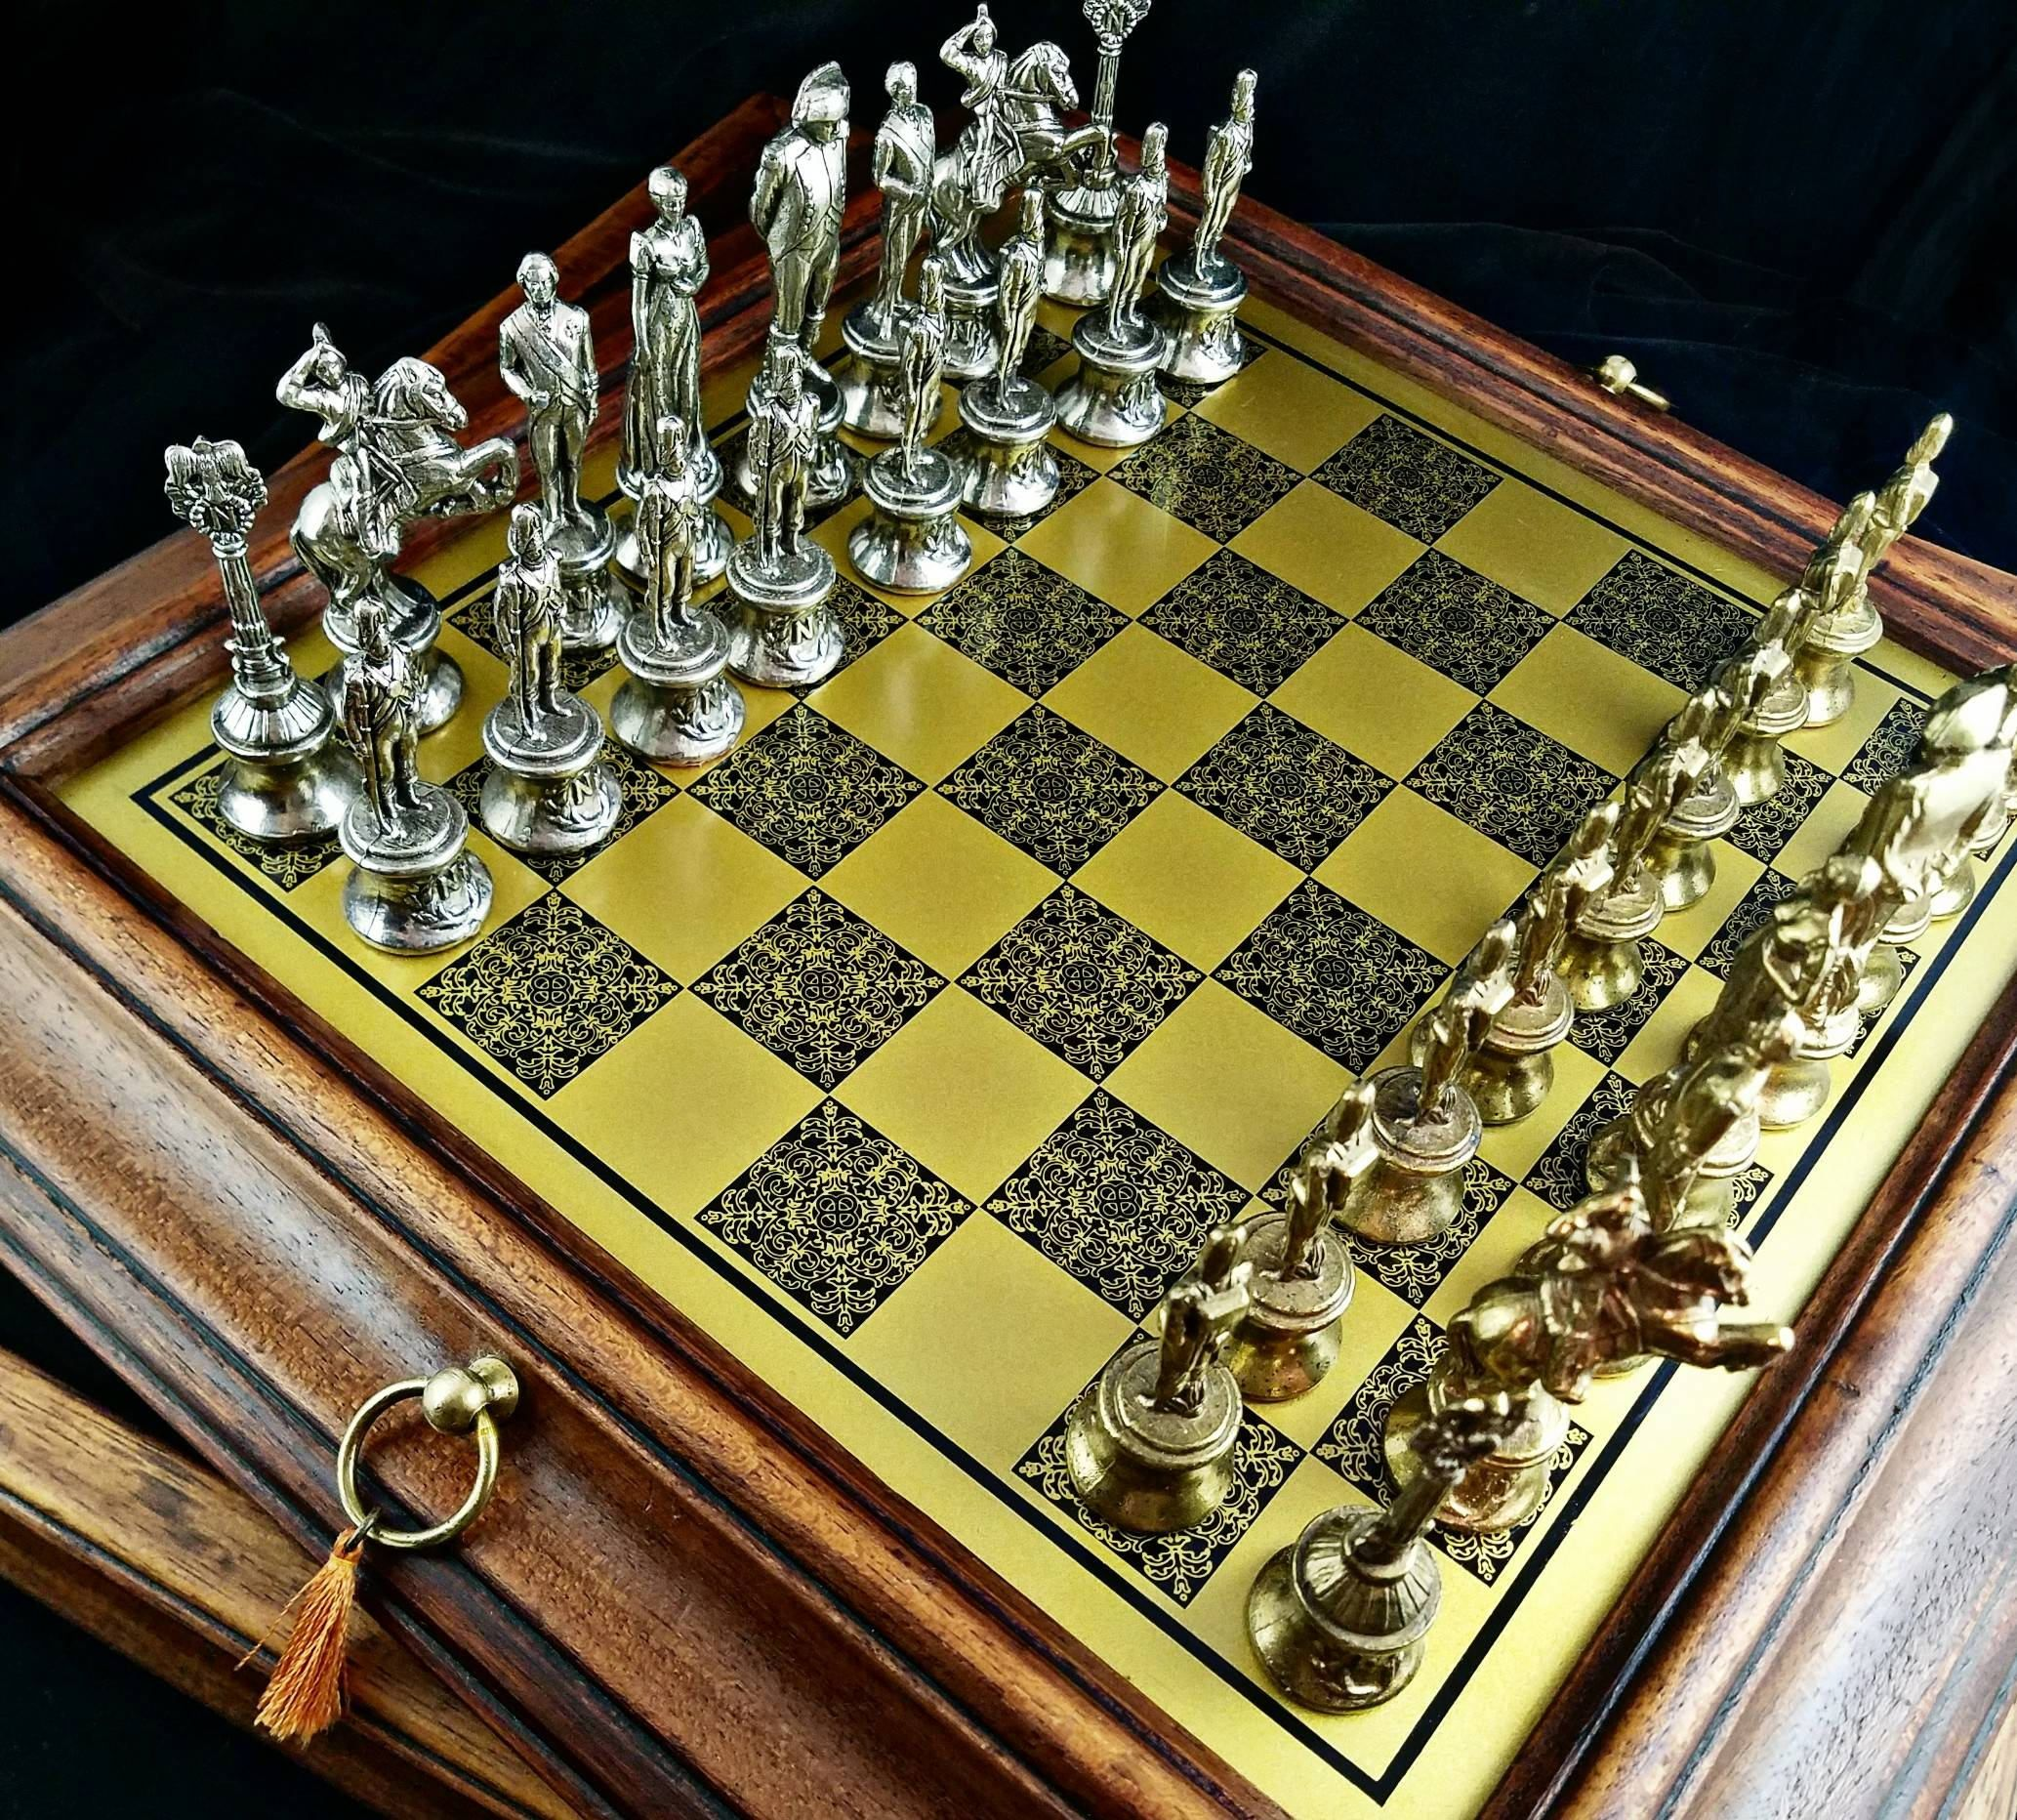 Steel Chess Pieces Antique Objets Dart Game Boxes Austrohungarian Silver